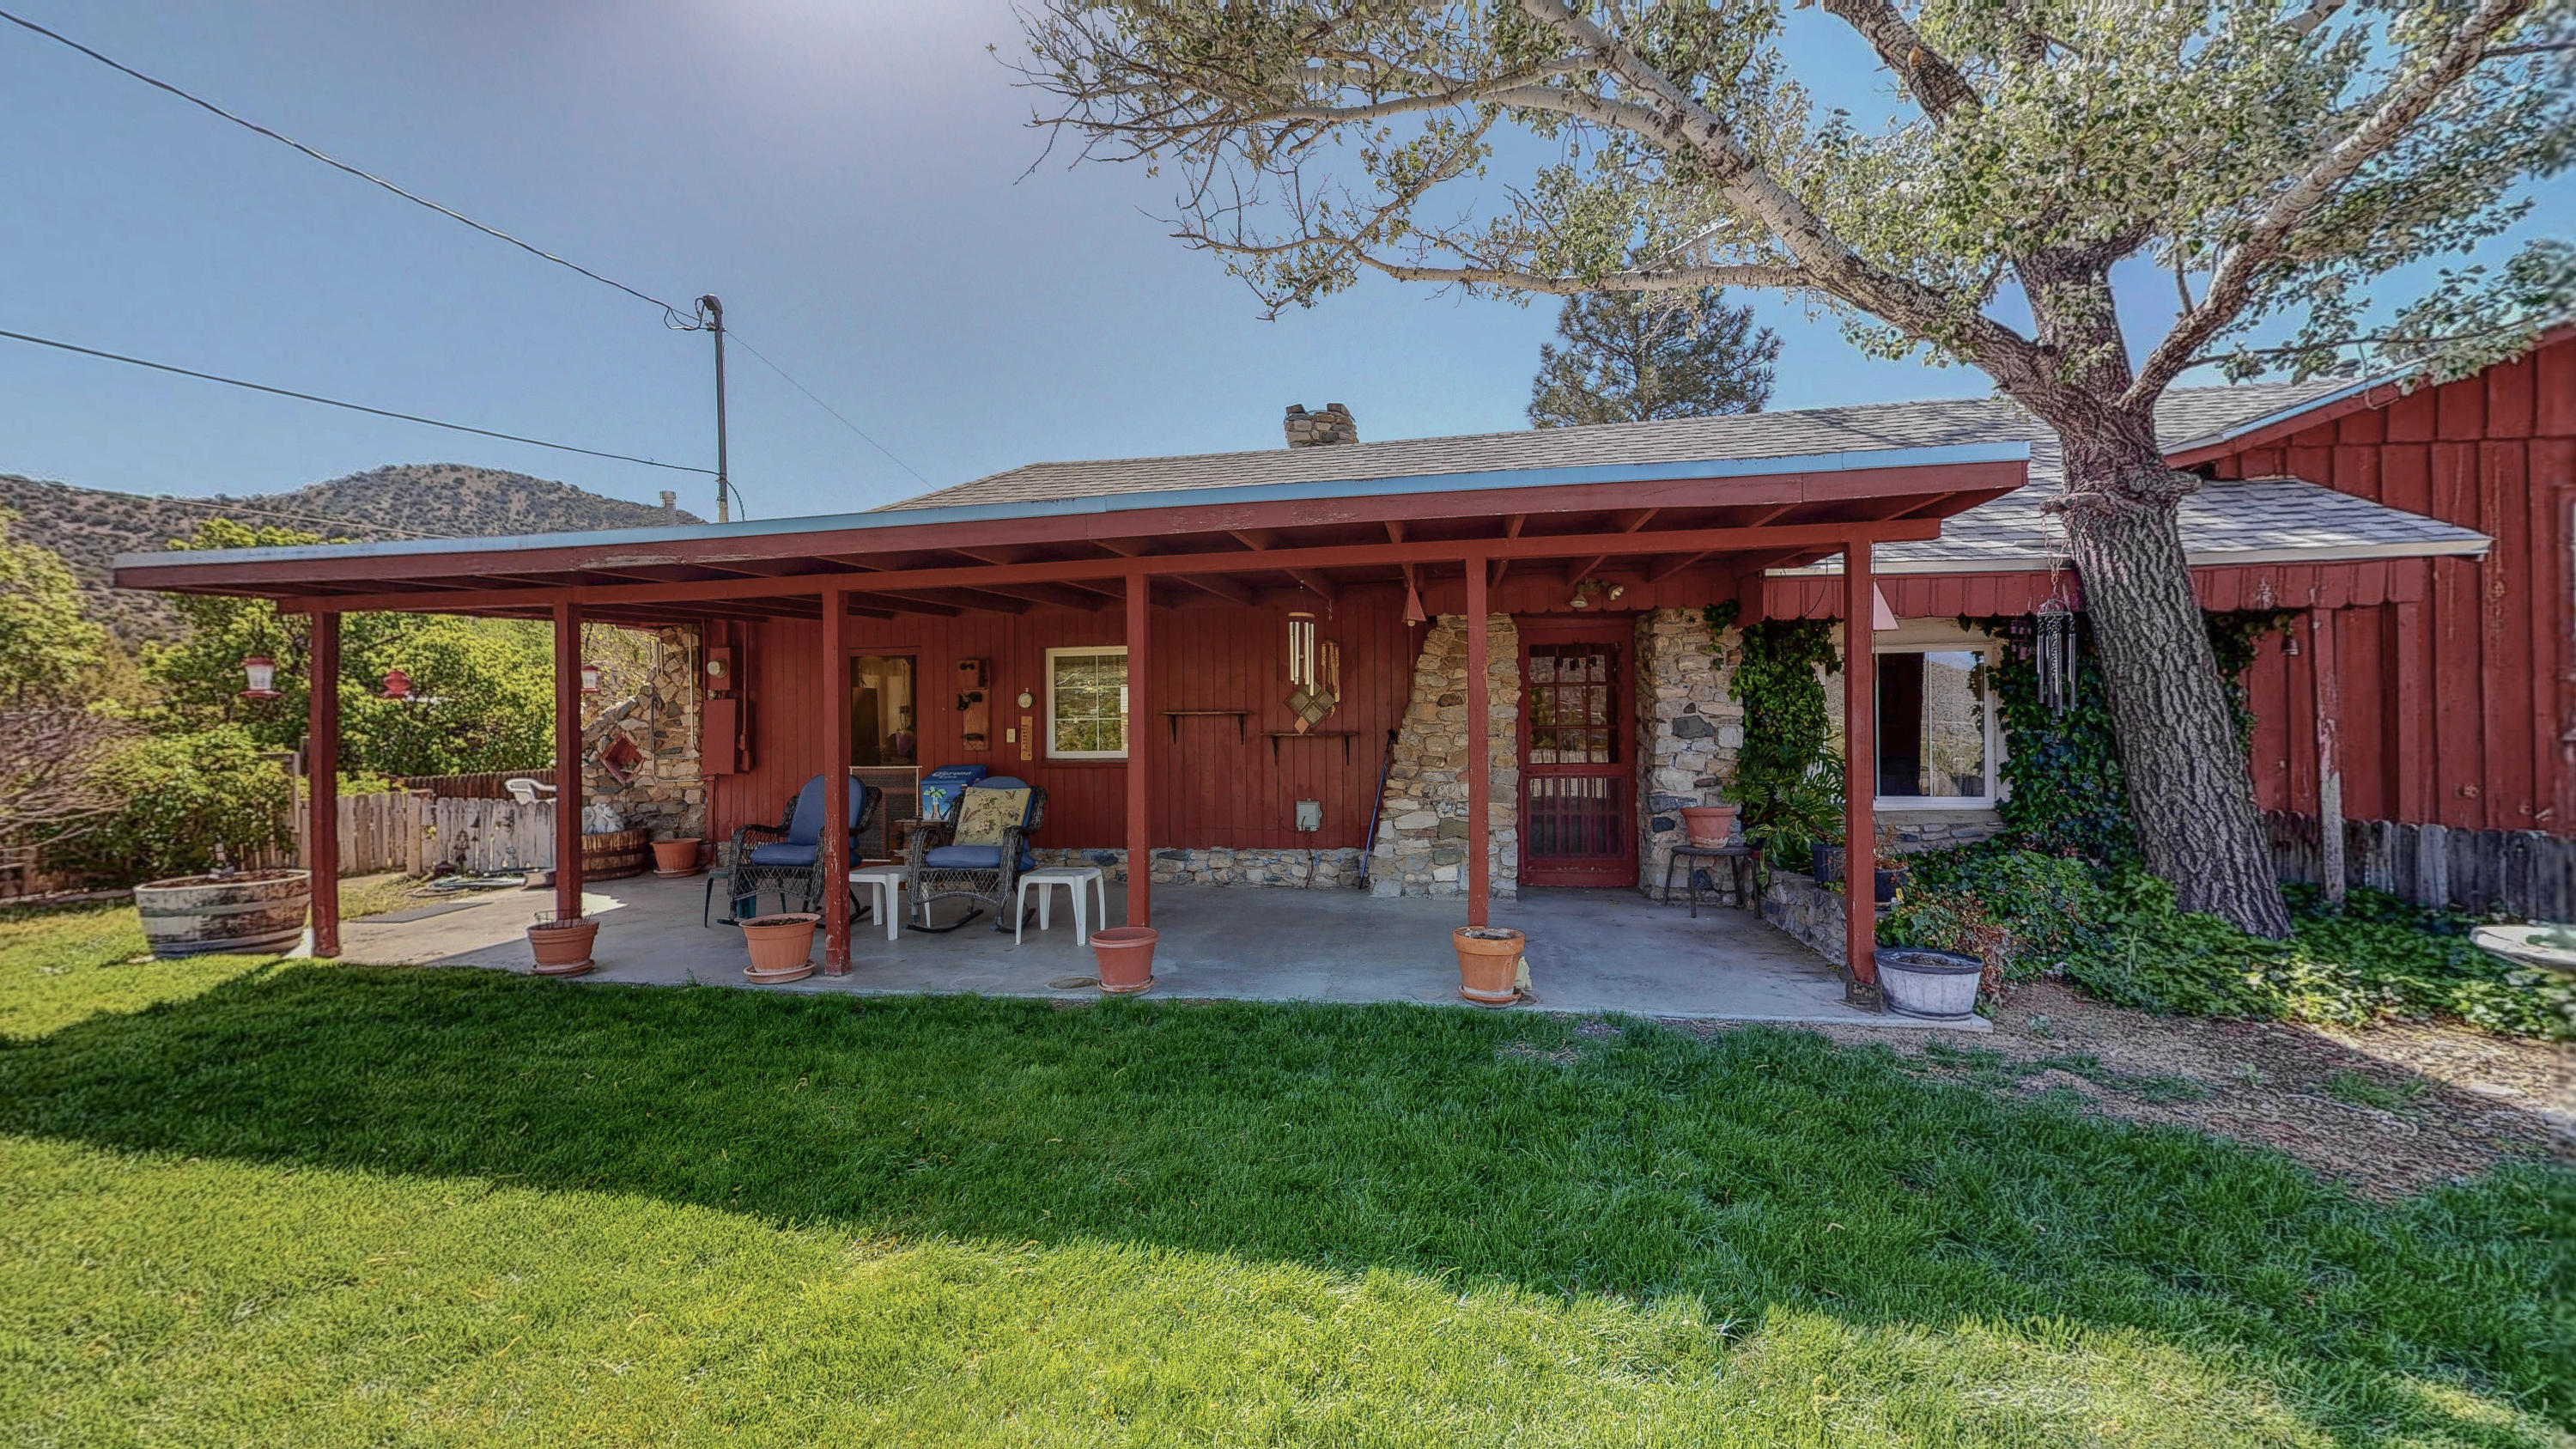 This 2,299 square ft. home set on 1.3 acres has scenic views in every direction with the Manzanos to the South and the Sandias to the North.  One unique feature is that it has a two story barn plus an additional rock storage building.  Vegas adorn two rooms of the home.  The home has a rural feel, but is less than ten minutes from Winrock Center.  This one of a kind home is a must see! NEW septic, NEW well, and NEW water heater recently installed! Lots of repairs completed.